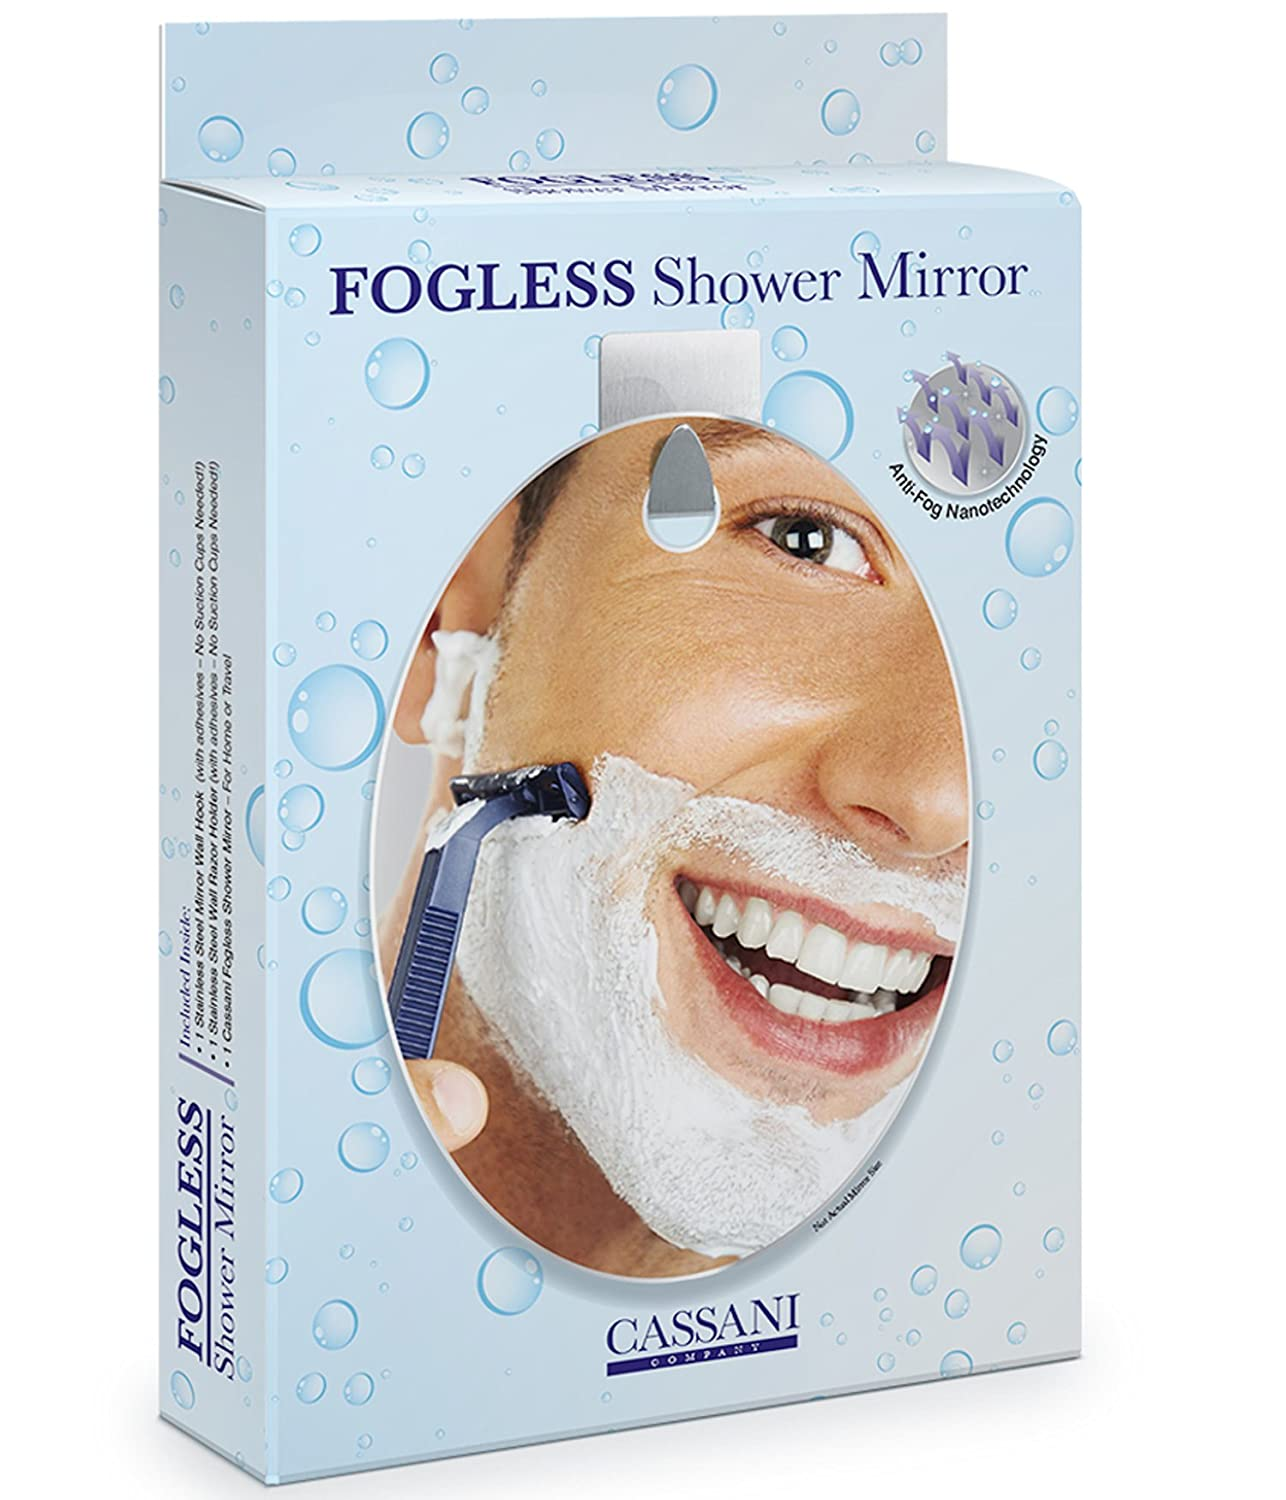 Fogless Shower Mirror - Guaranteed Fog Free - New Modern Facial Contour Design - No Suction Cups - Designed Not to Fall - Ultra-easy Set up - Includes Additional Razor Wall Mount Cassani Company